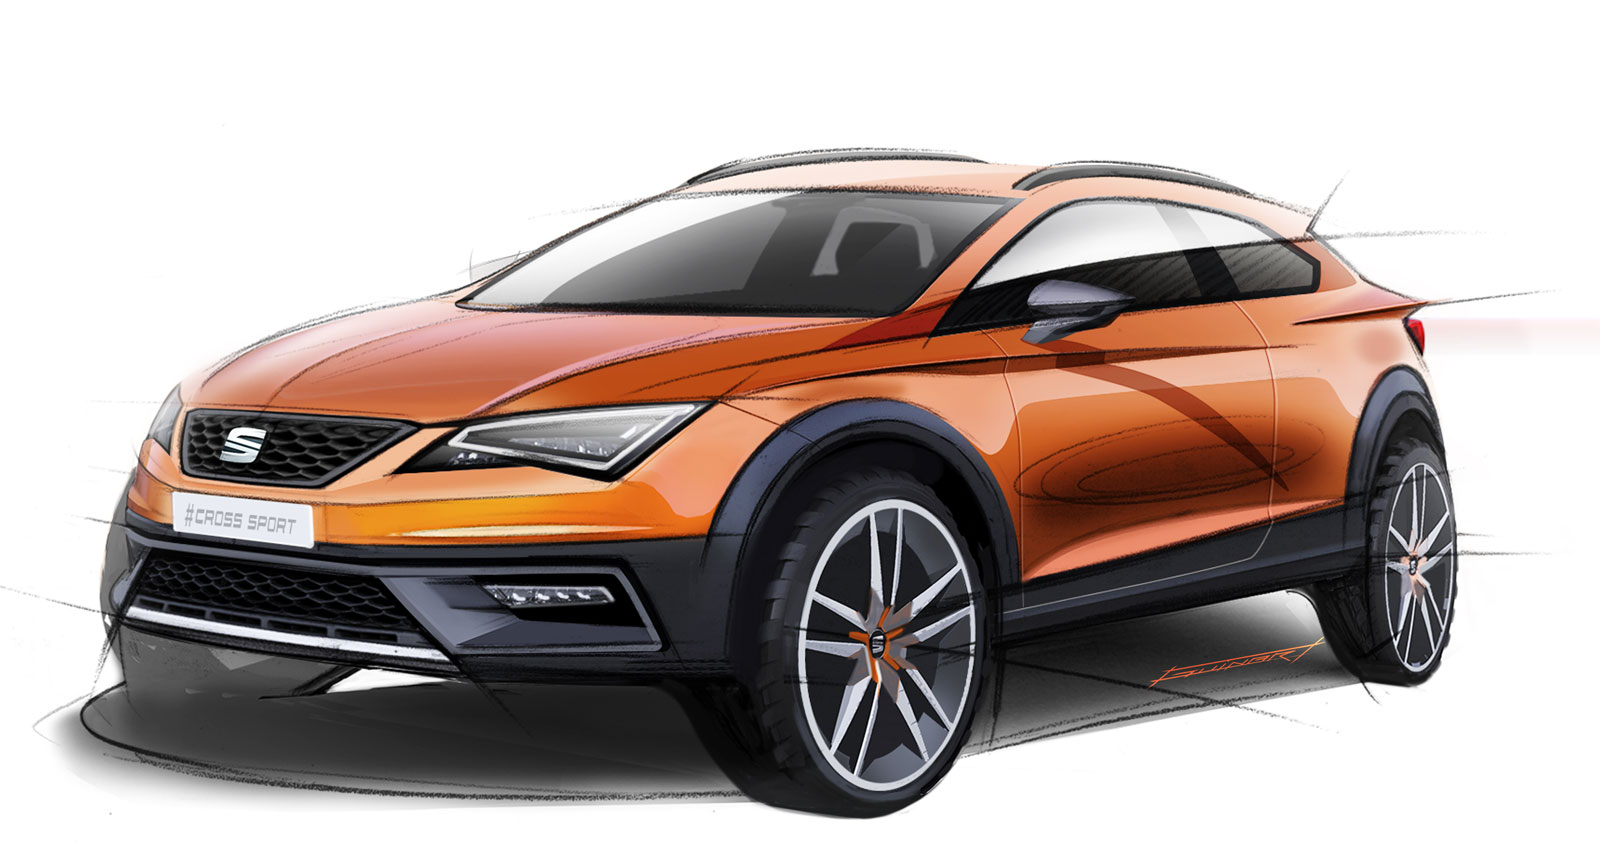 seat leon cross sport concept preview design sketches car body design. Black Bedroom Furniture Sets. Home Design Ideas